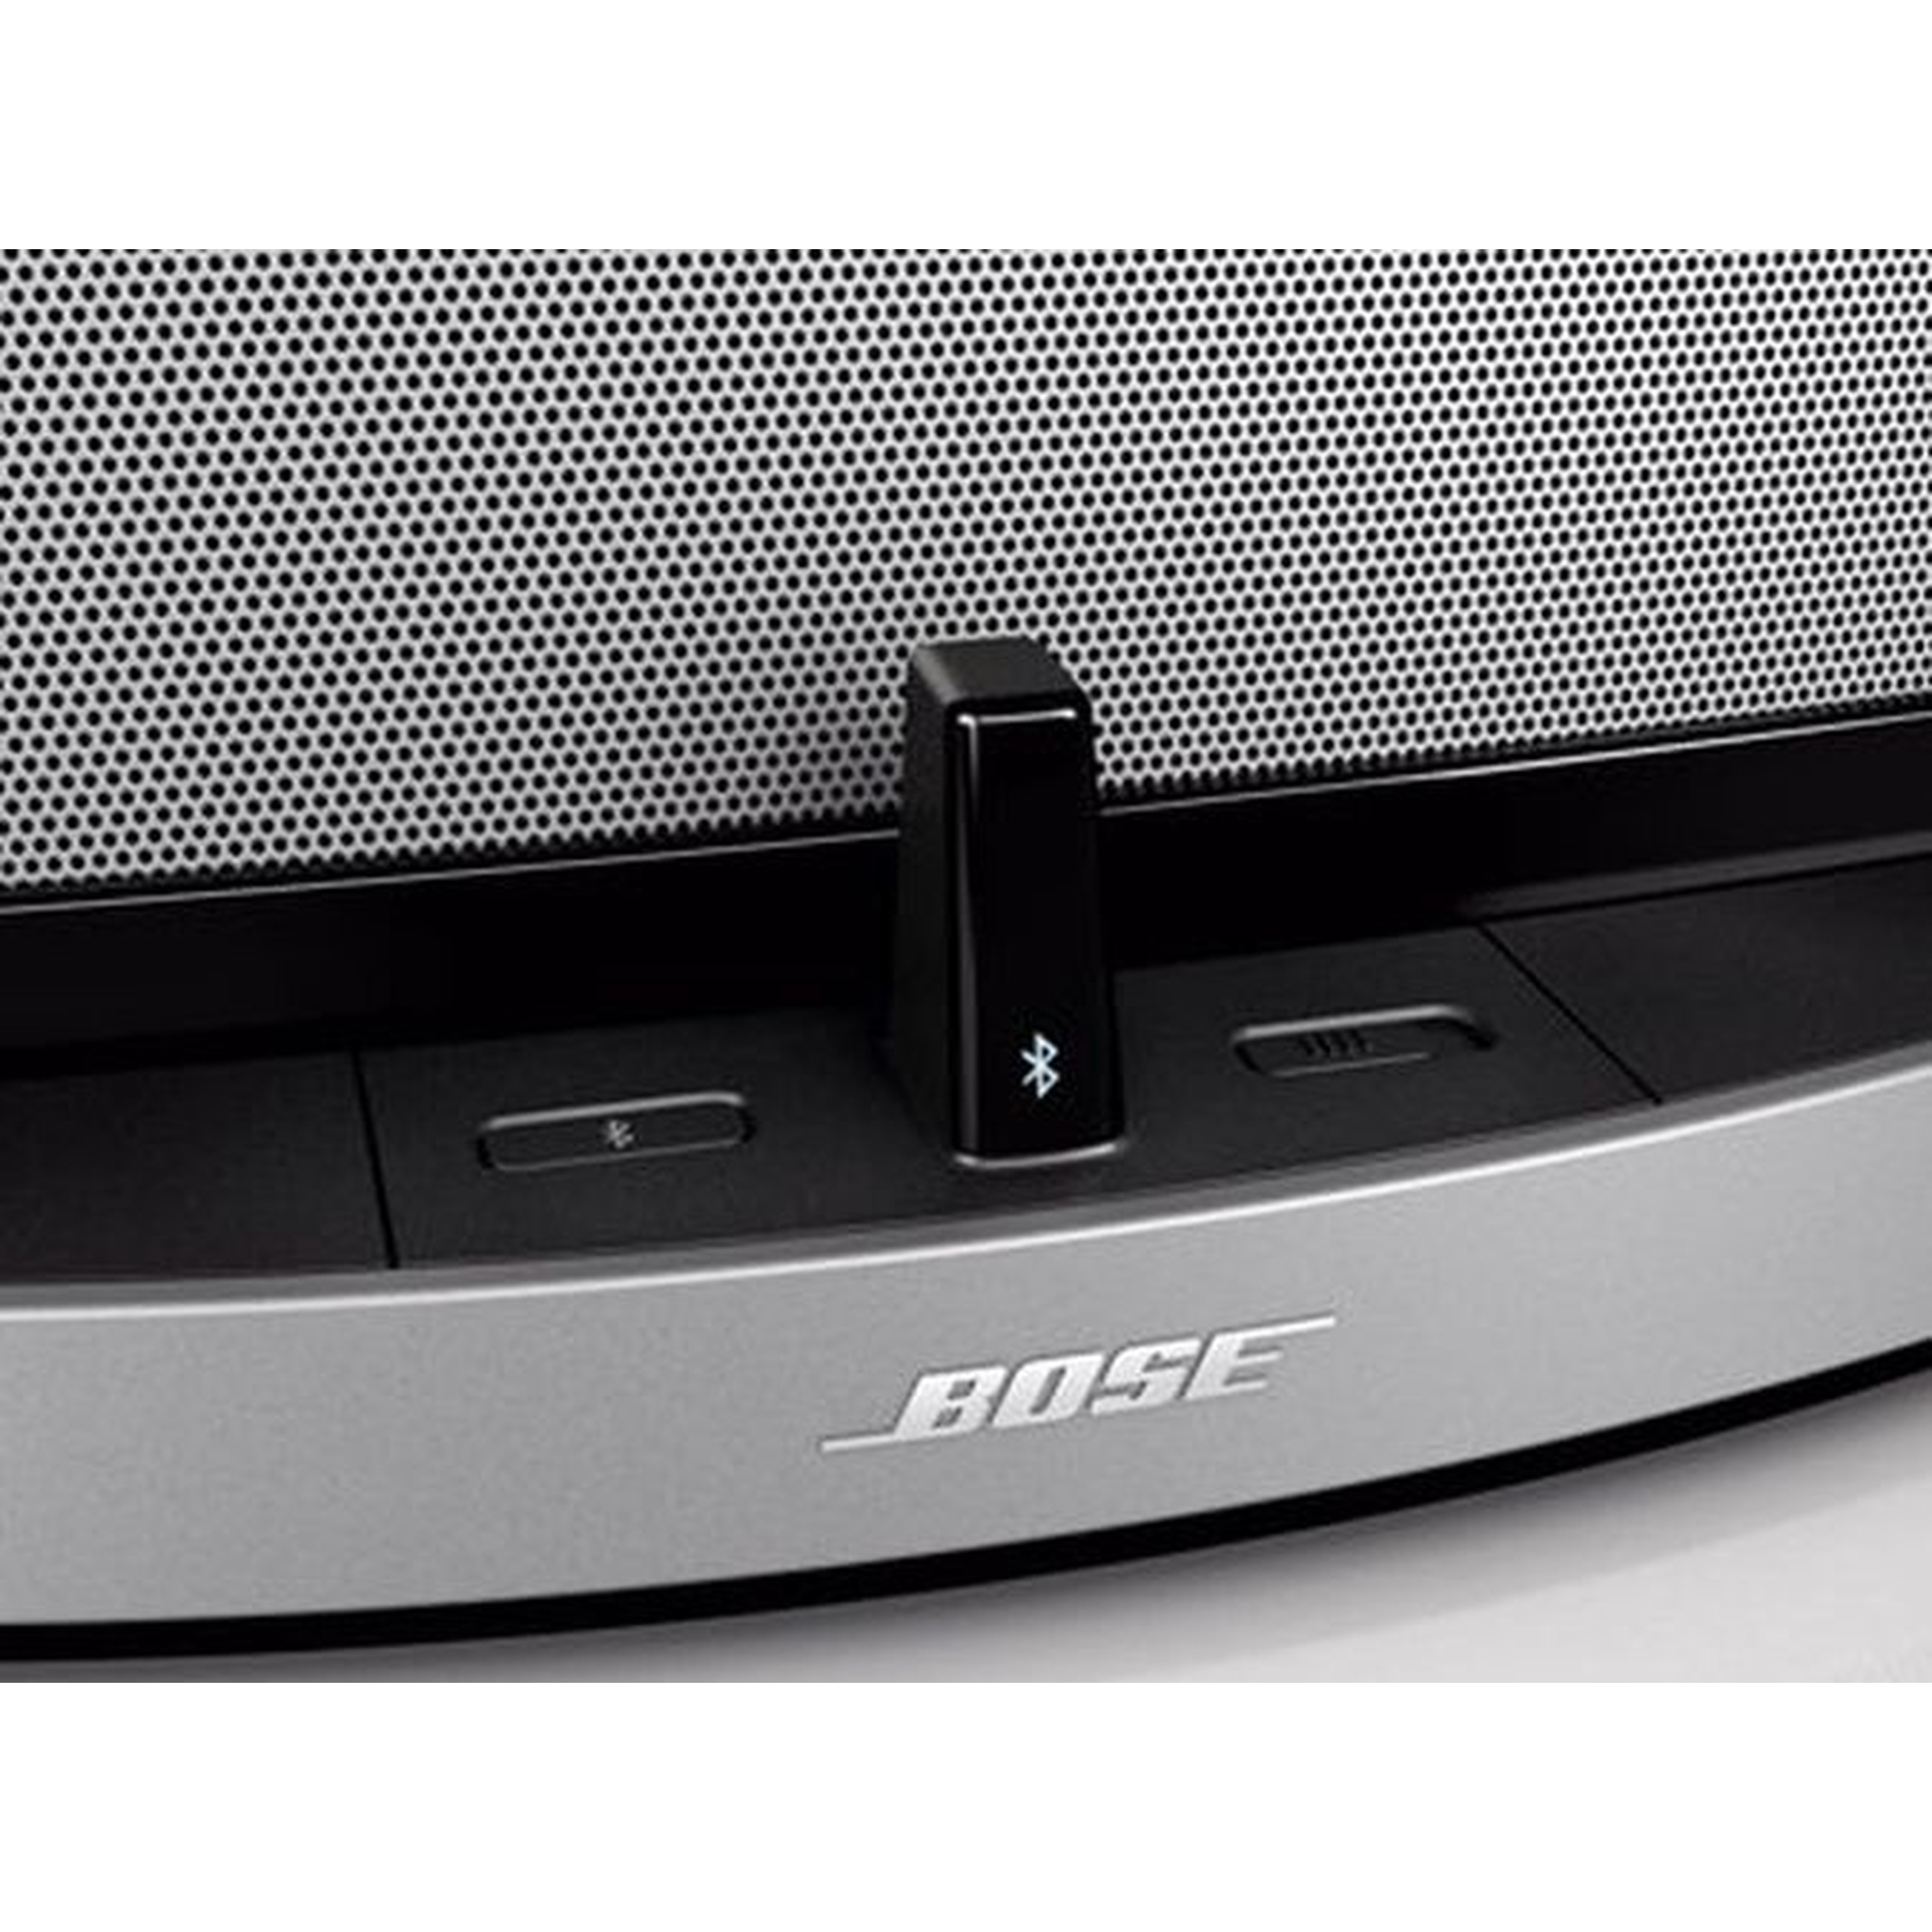 Bose Sounddock 10 Aktiv Lautsprecher Apple Dock Bluetooth Fernbedienung